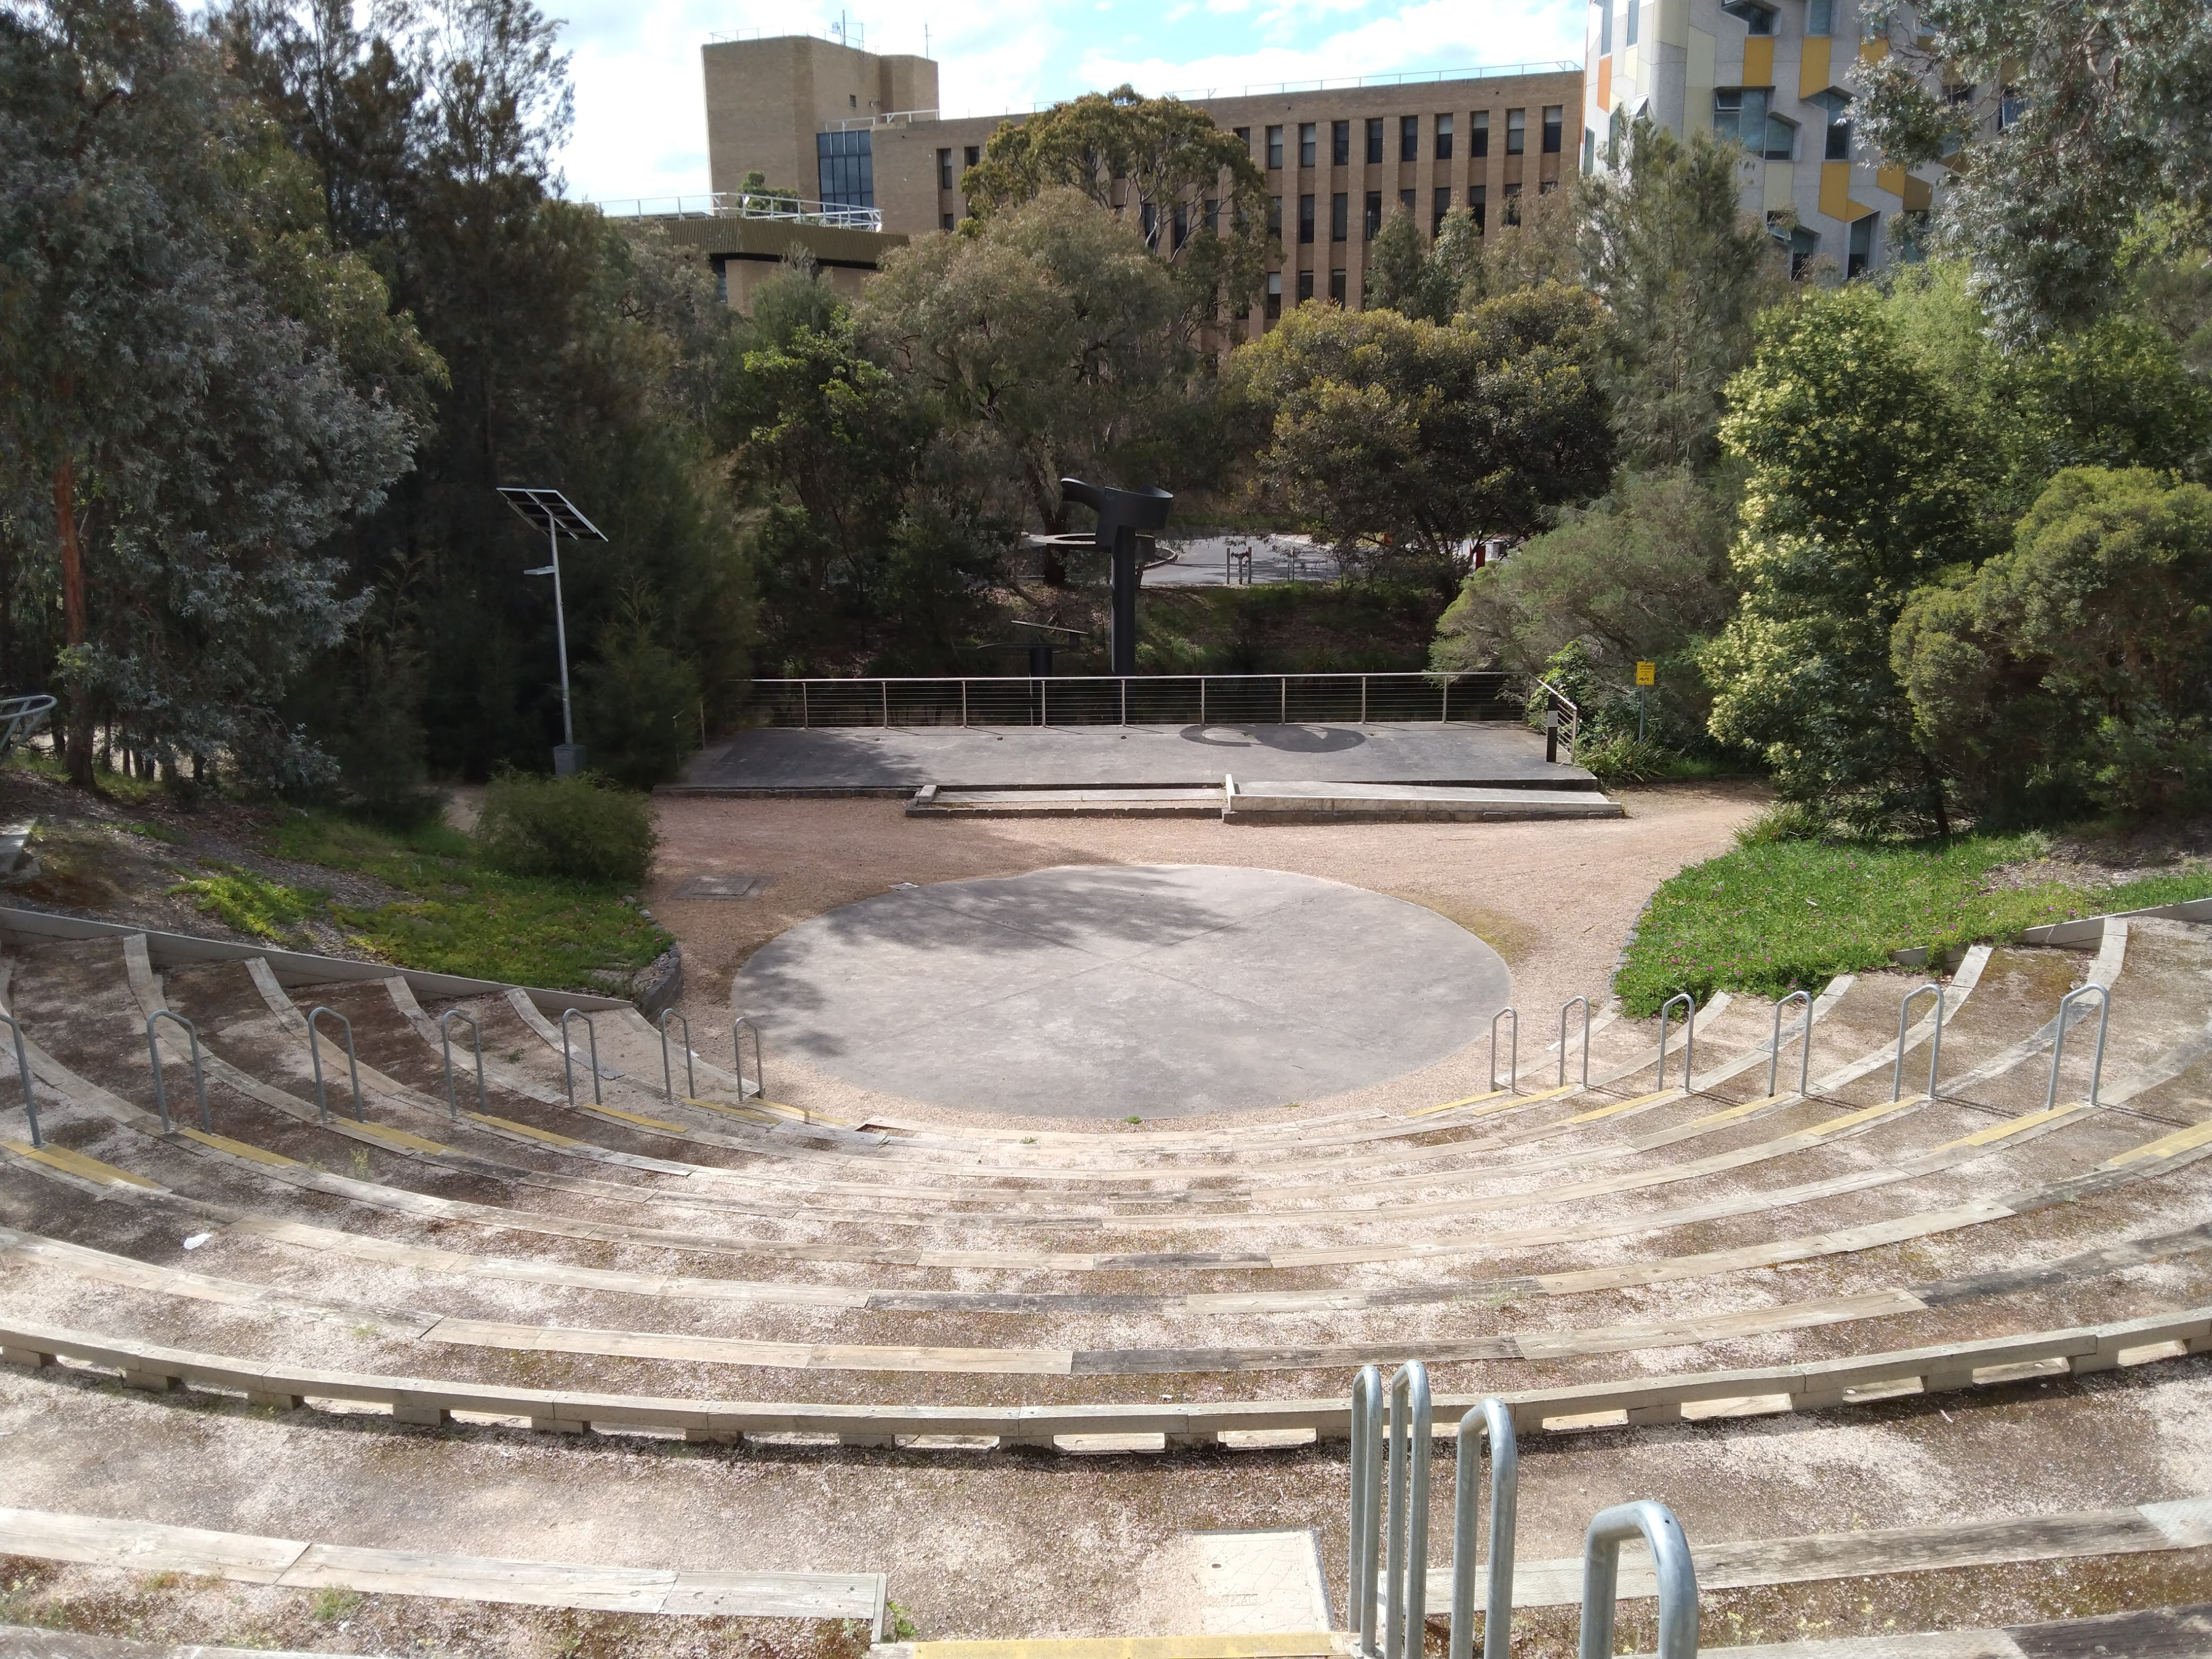 Theatre steps and stage looking across moat to buildings